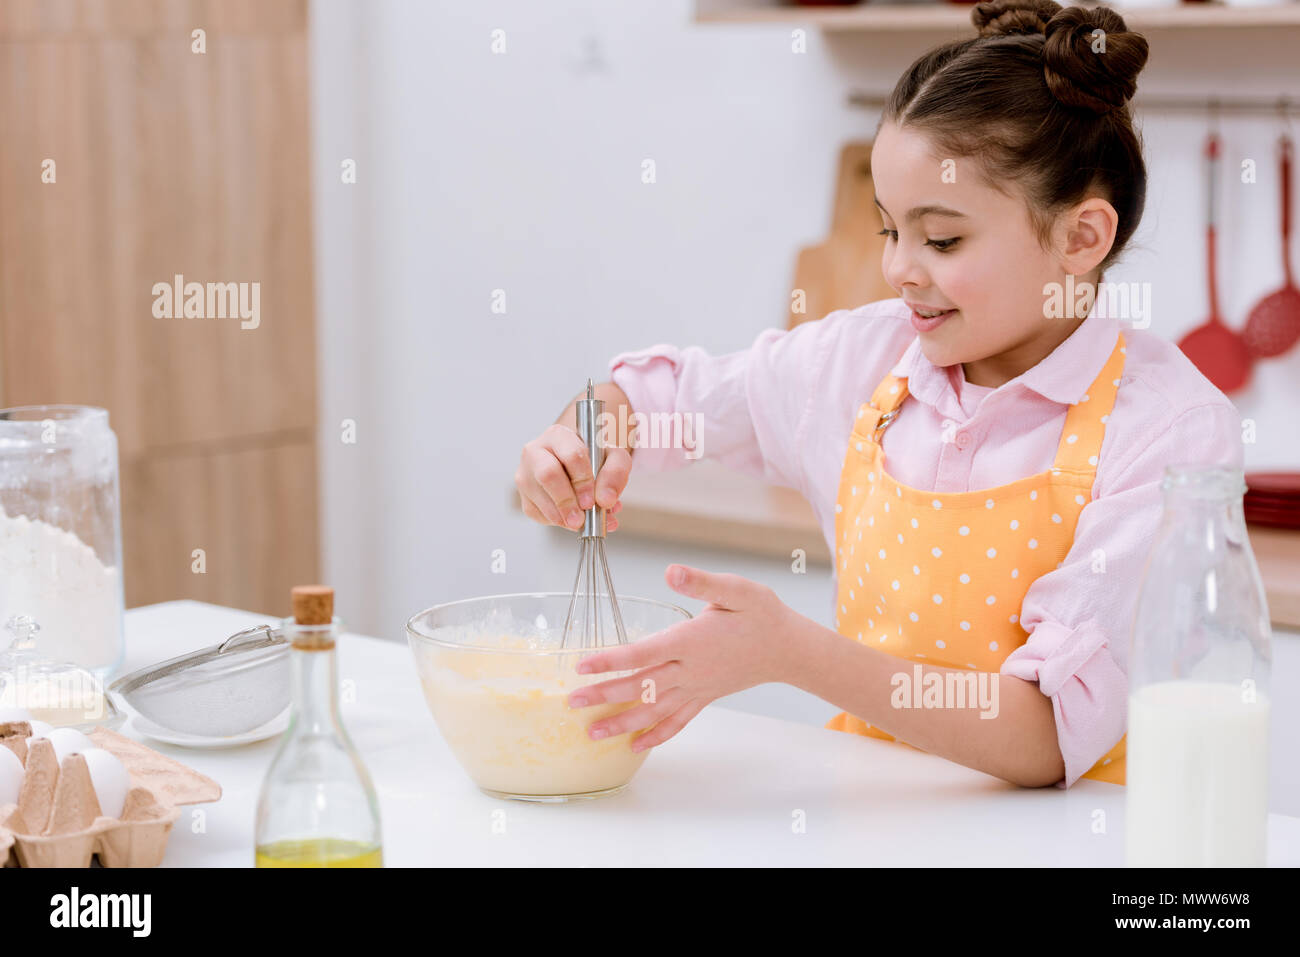 adorable little child mixing dough for pastry - Stock Image